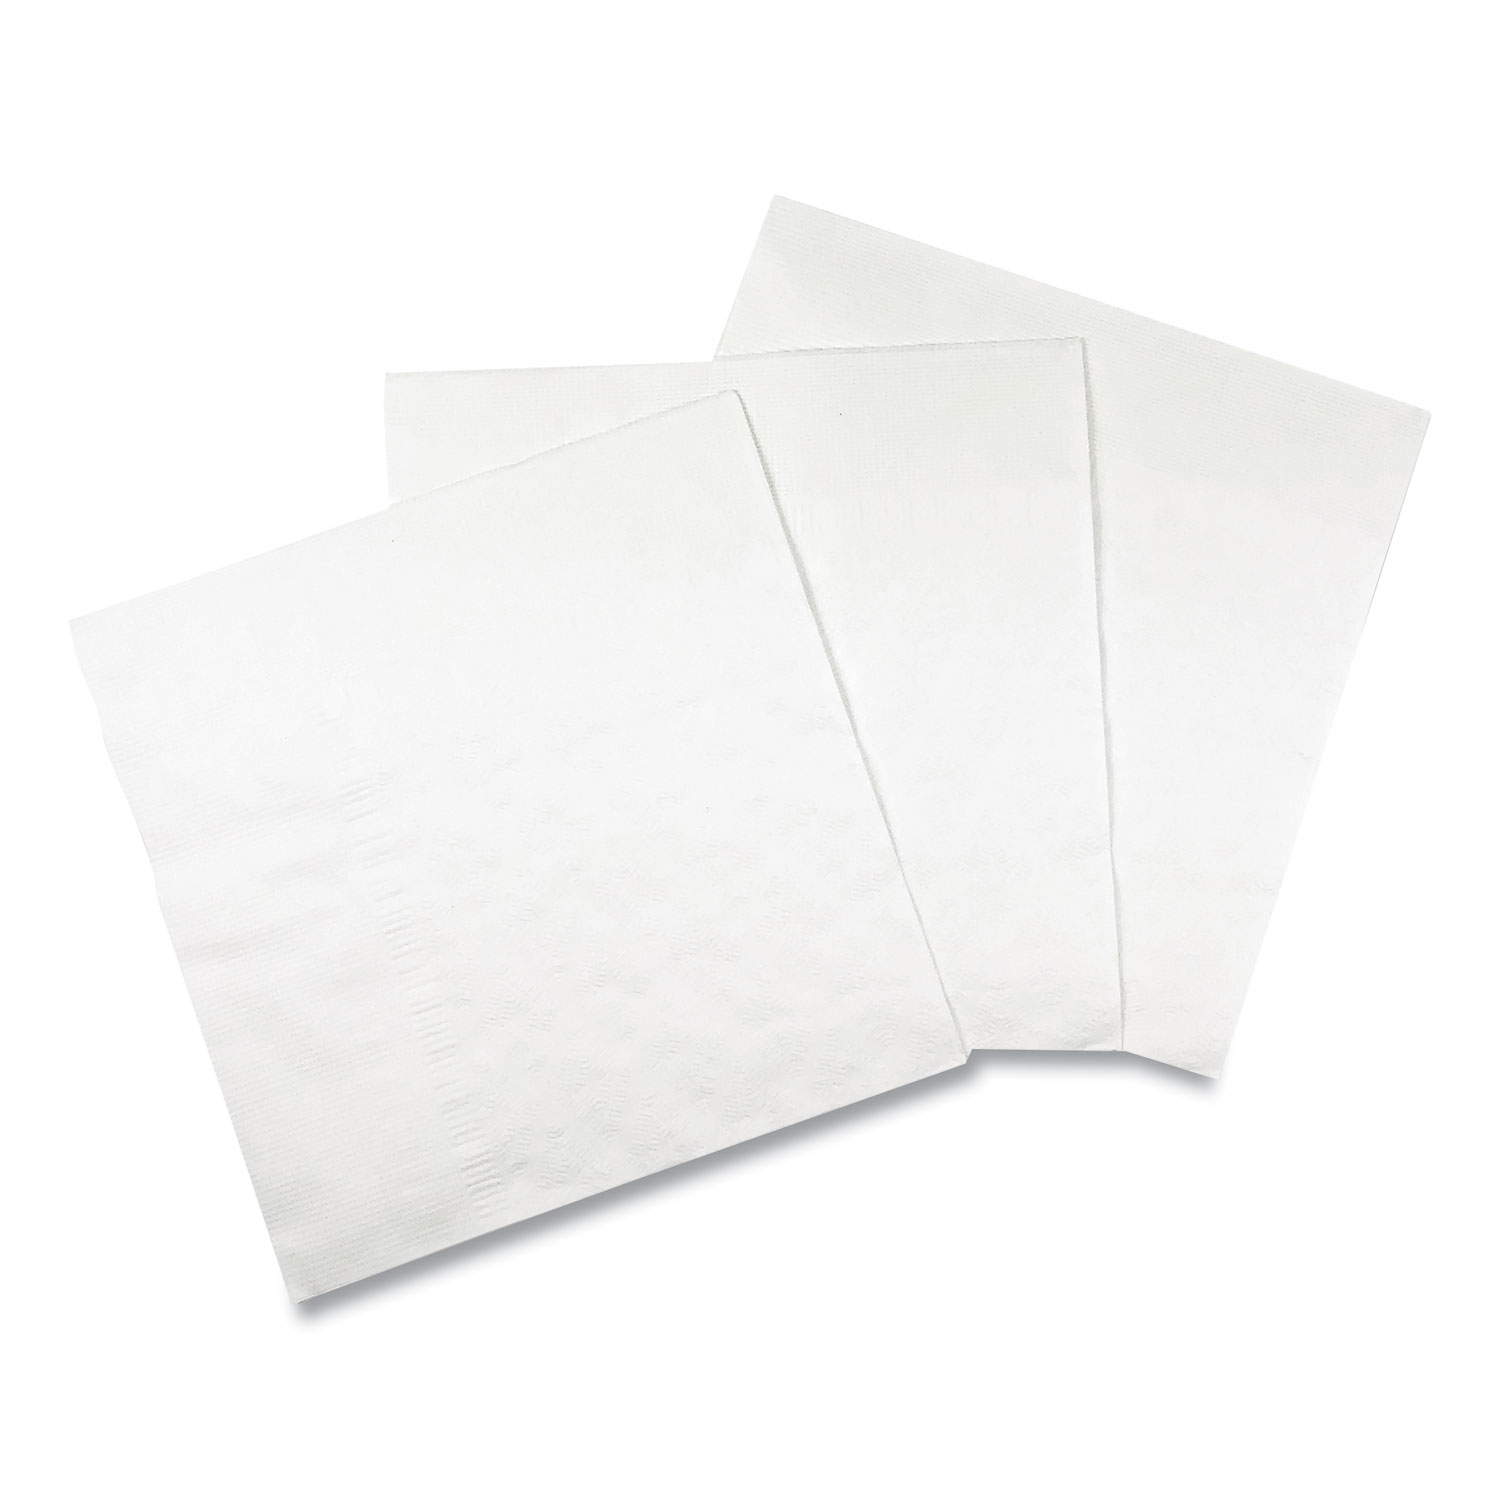 "Dinner Napkin, 17"" x 17"", White, 3000/Carton"